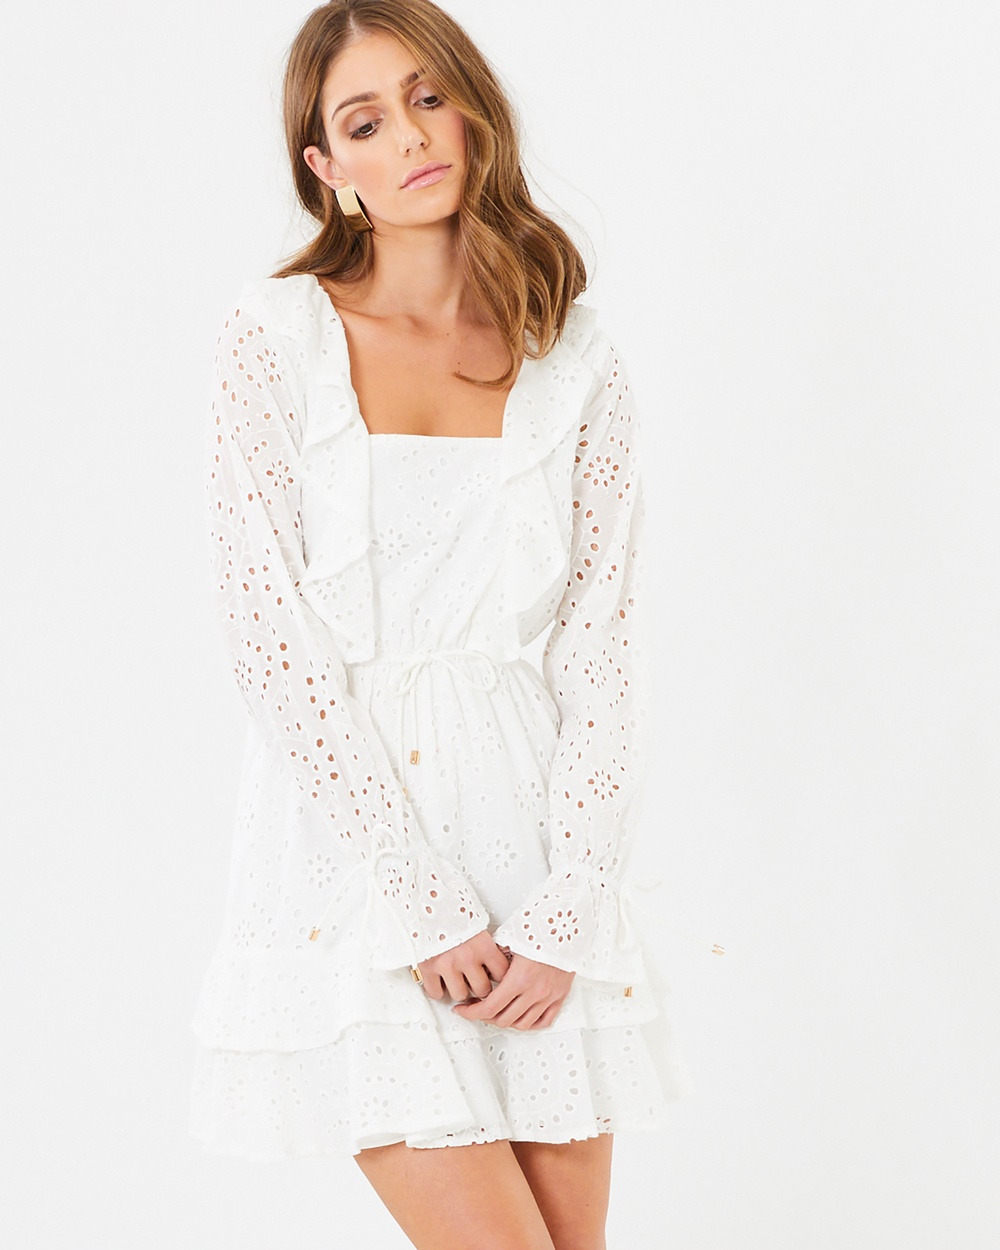 CHANCERY Polly Frill Dress Dresses White Lace Polly Frill Dress